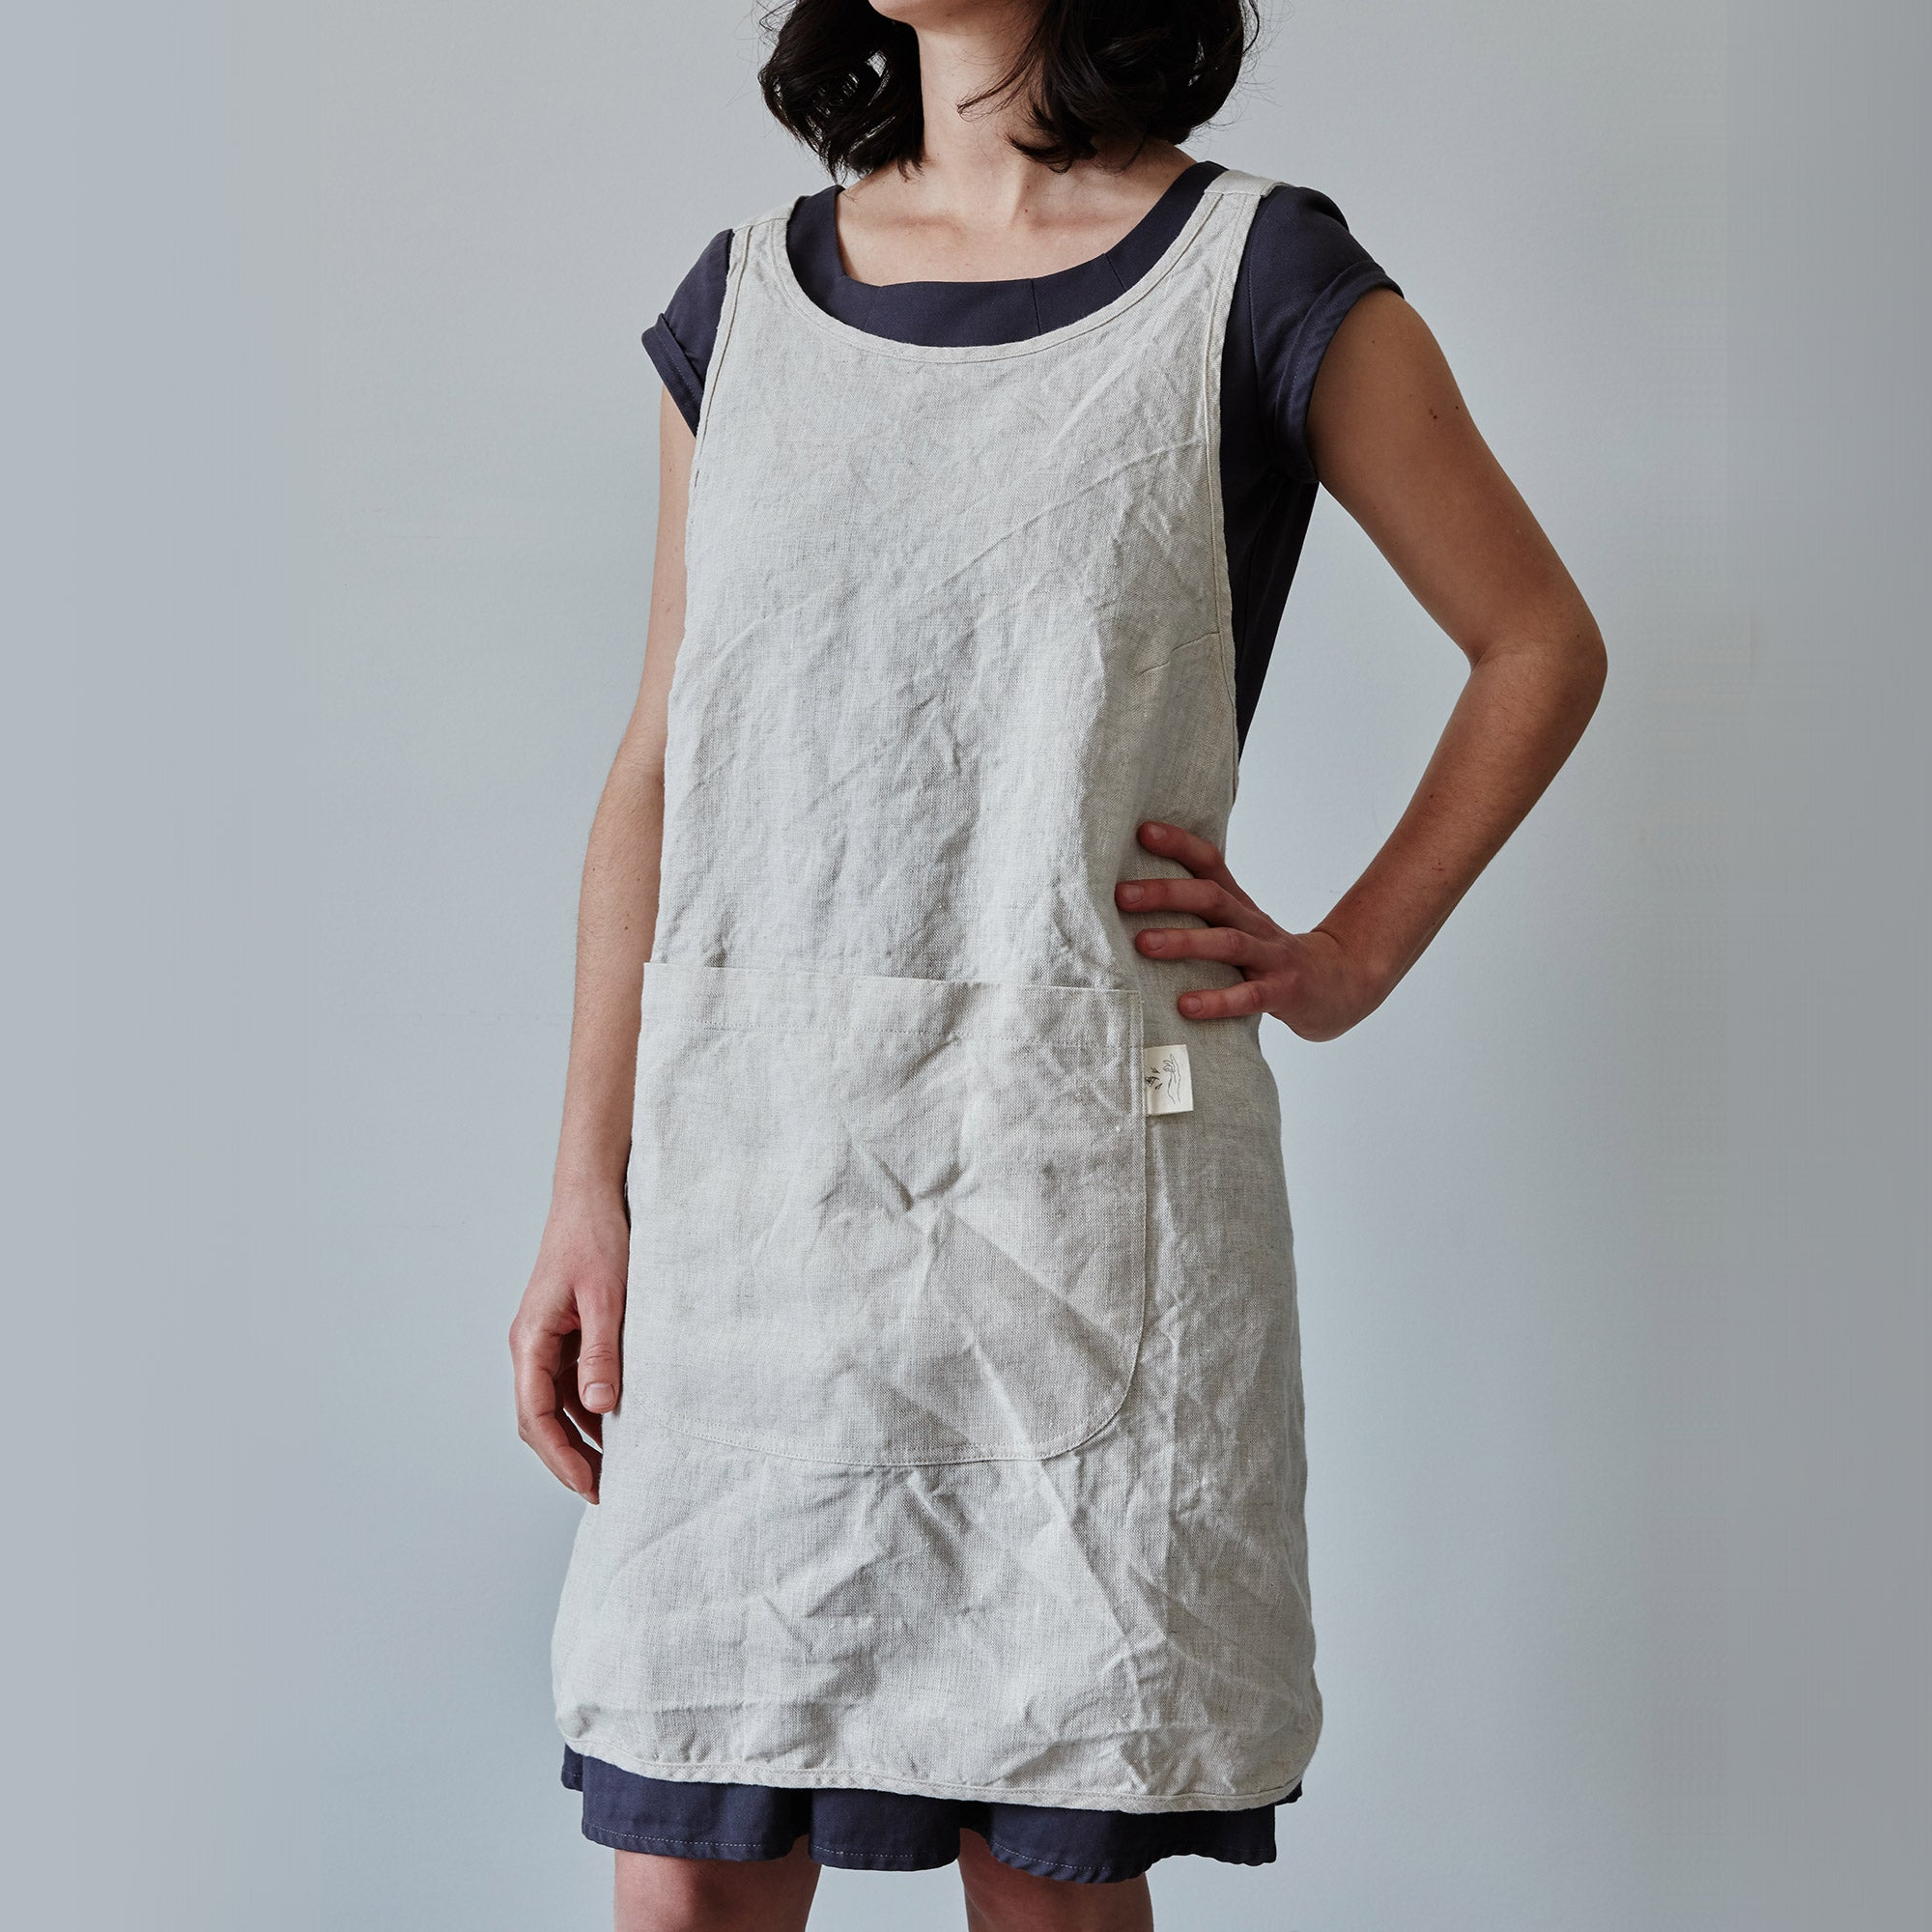 Blue Linen Kitchen Apron - One Size - Fits XS to XL - Sold by Chic & Basta